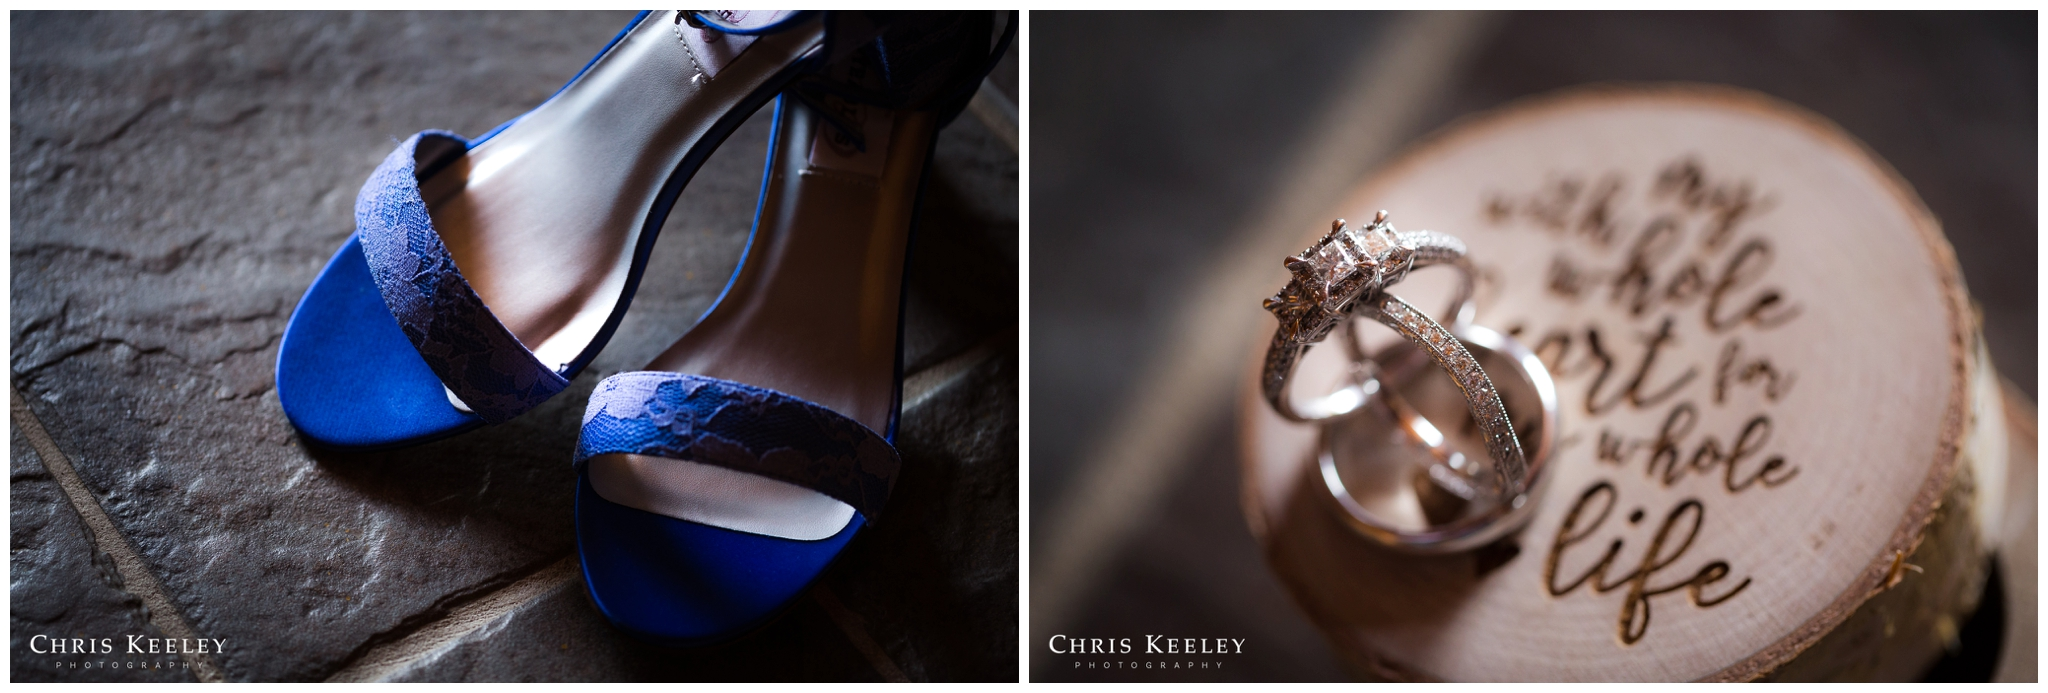 brides-blue-shoes-and-rings-on-box.jpg